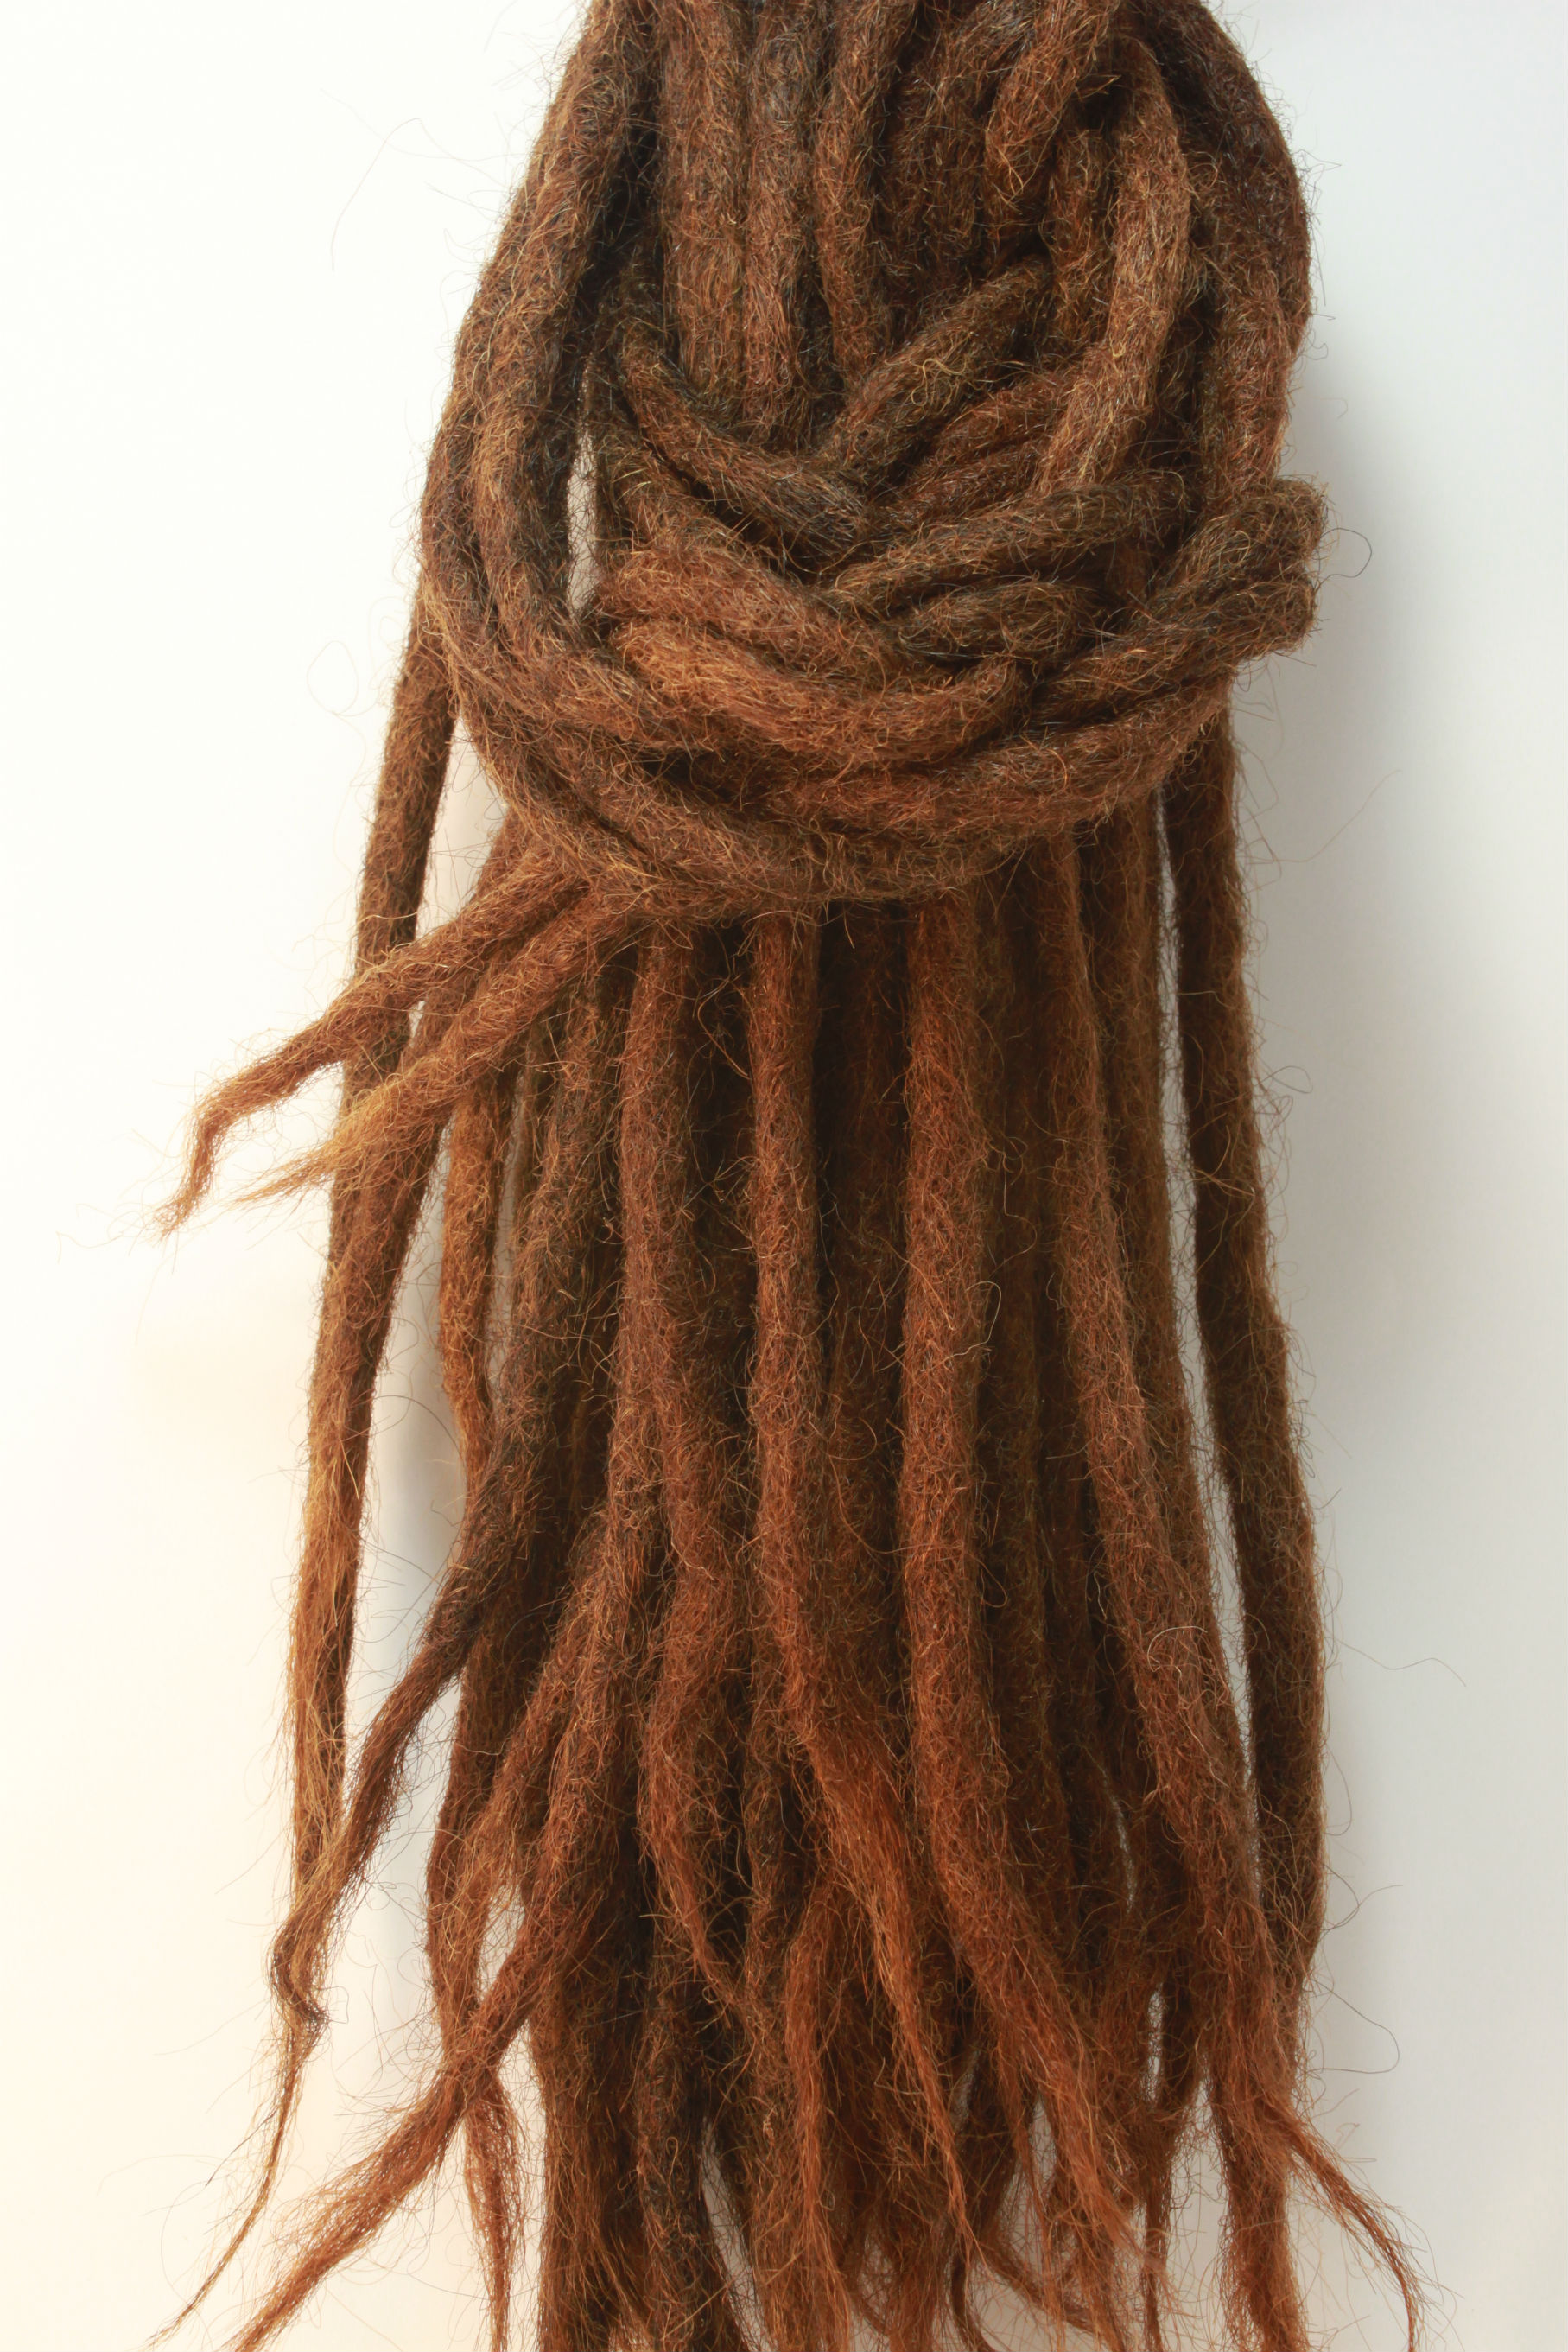 10 X Brown Human Hair Dreadlock Extensions Best Quality On Storenvy